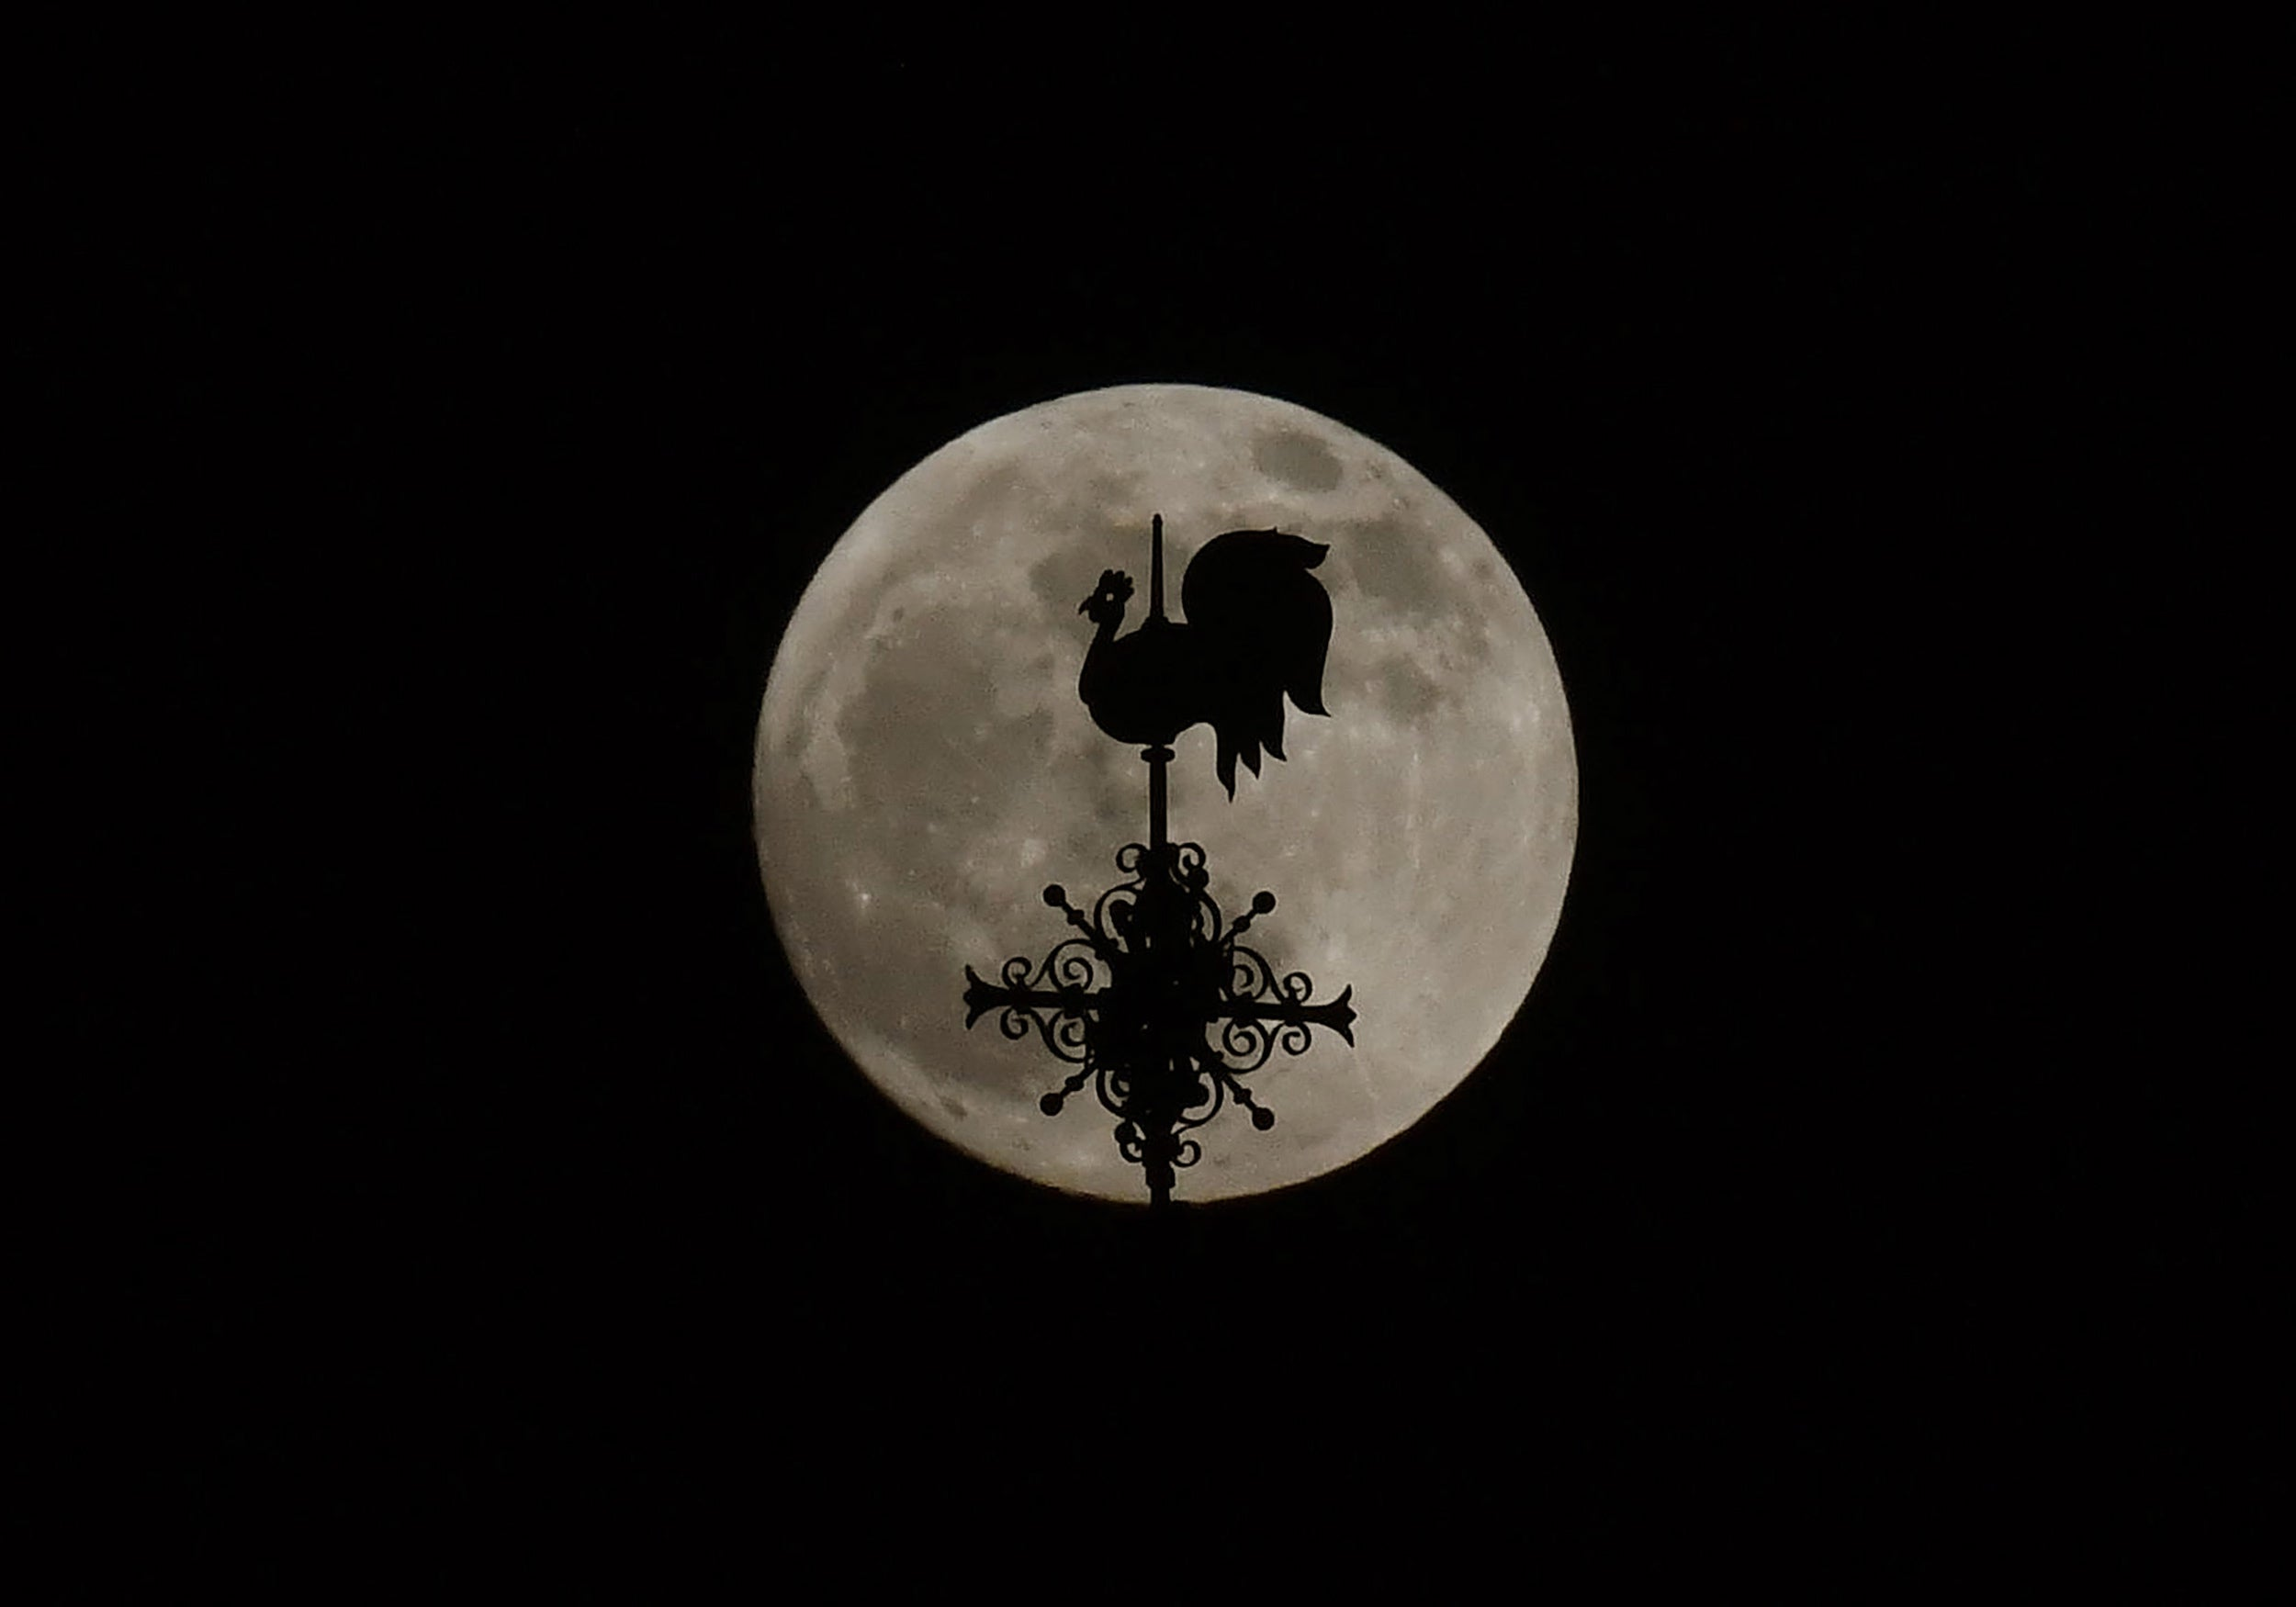 Stargazing in August: what to look out for in the skies this month